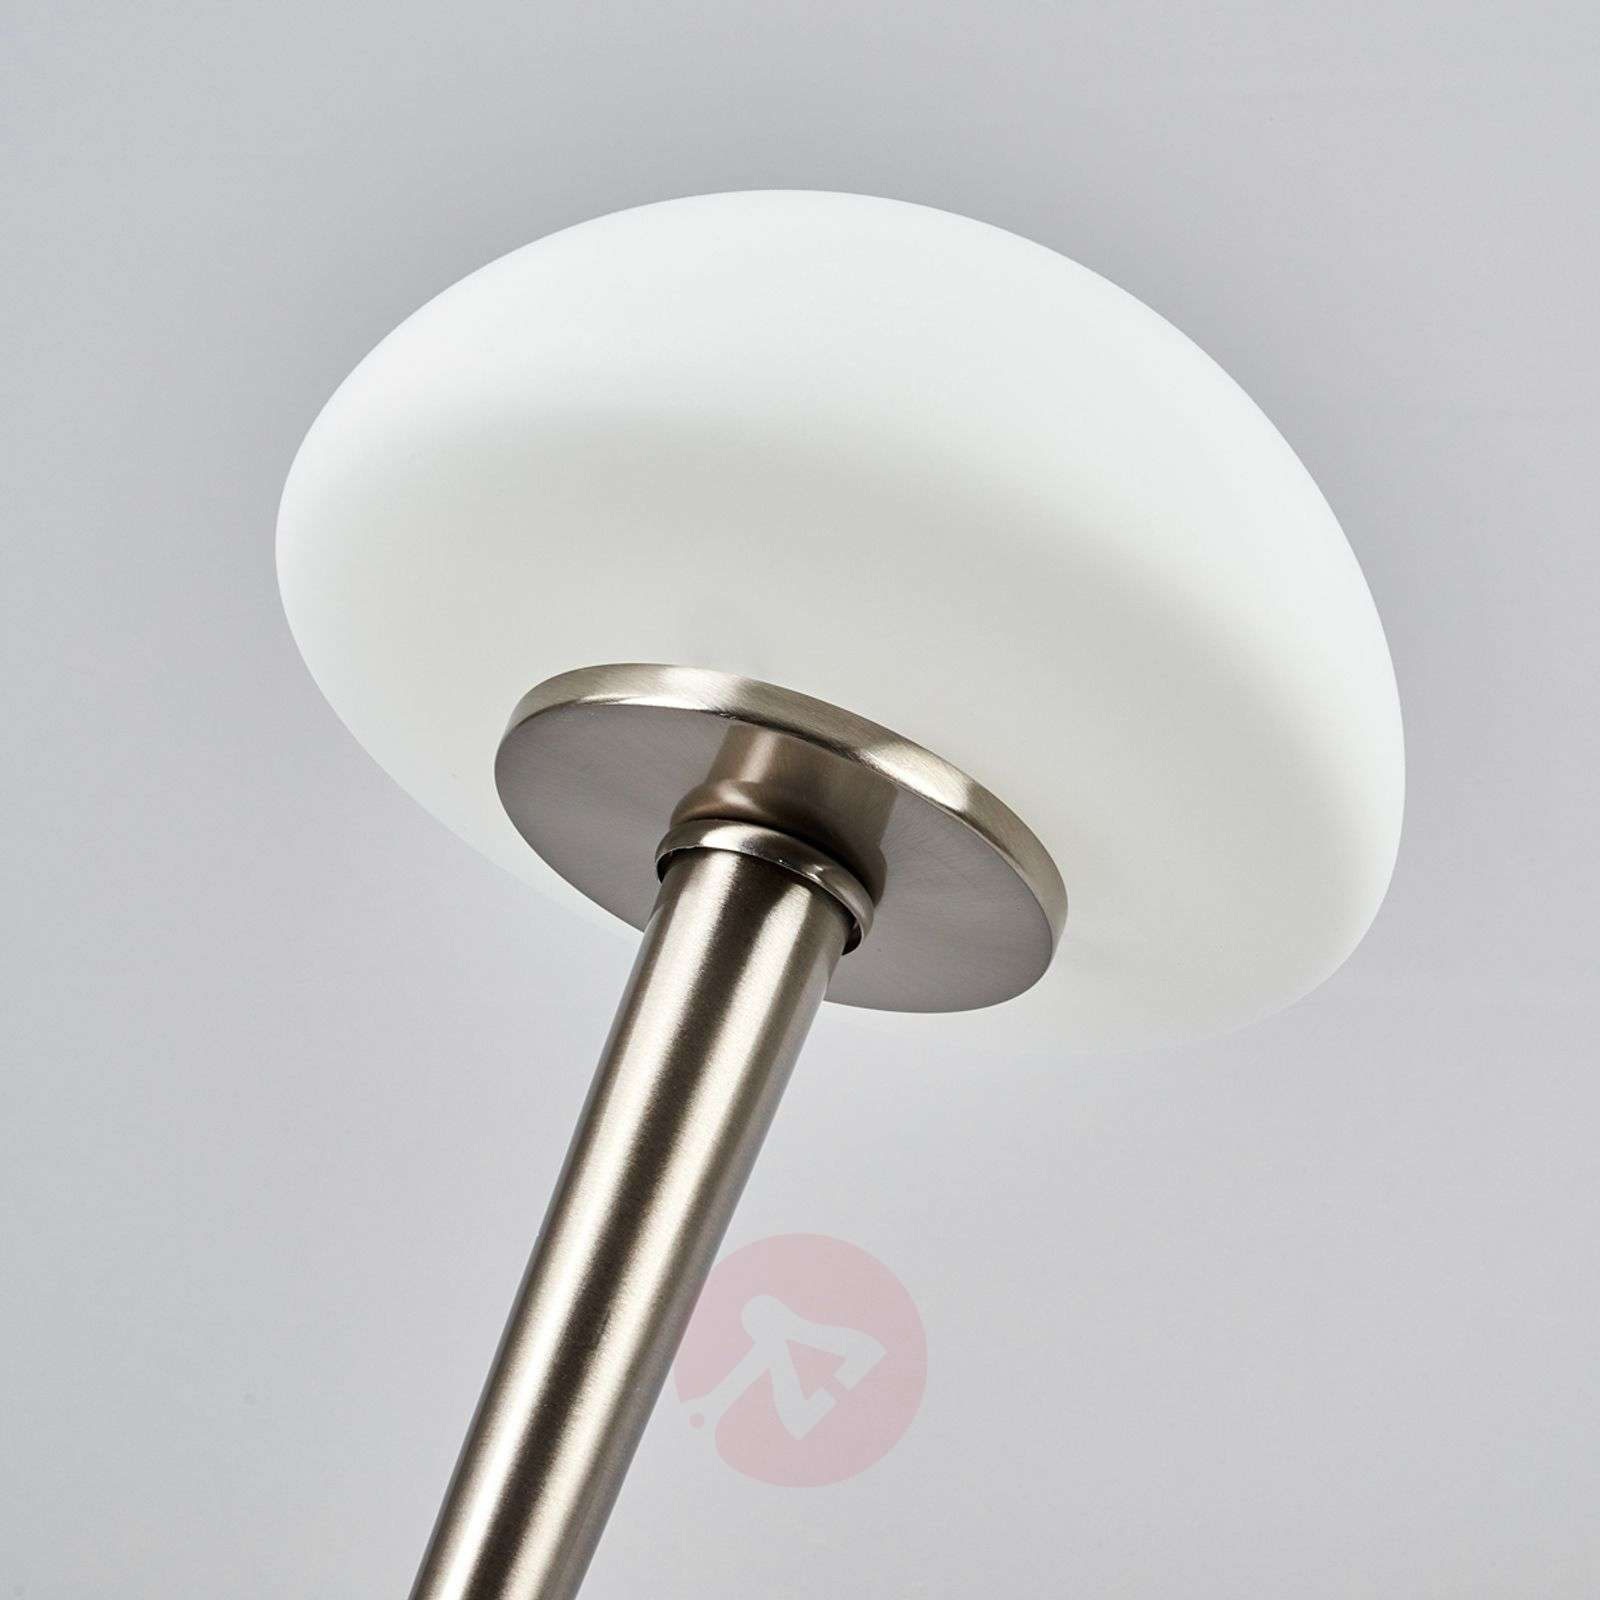 Attractively shaped Touch table lamp-6054351-03